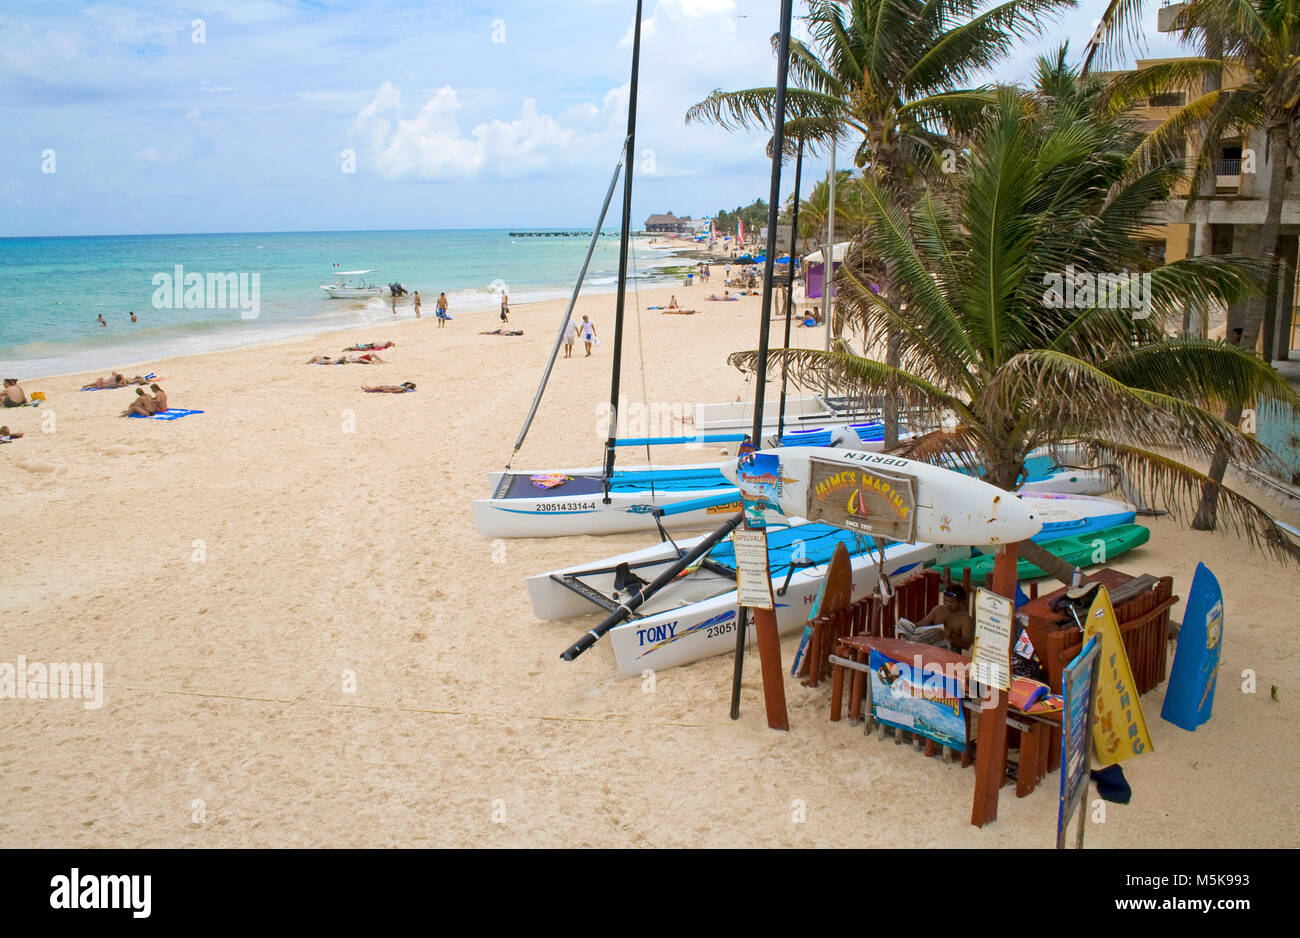 Wassersport center am Strand von Playa del Carmen, Mexiko, Karibik | Watersport center at beach of Playa del Carmen, - Stock Image